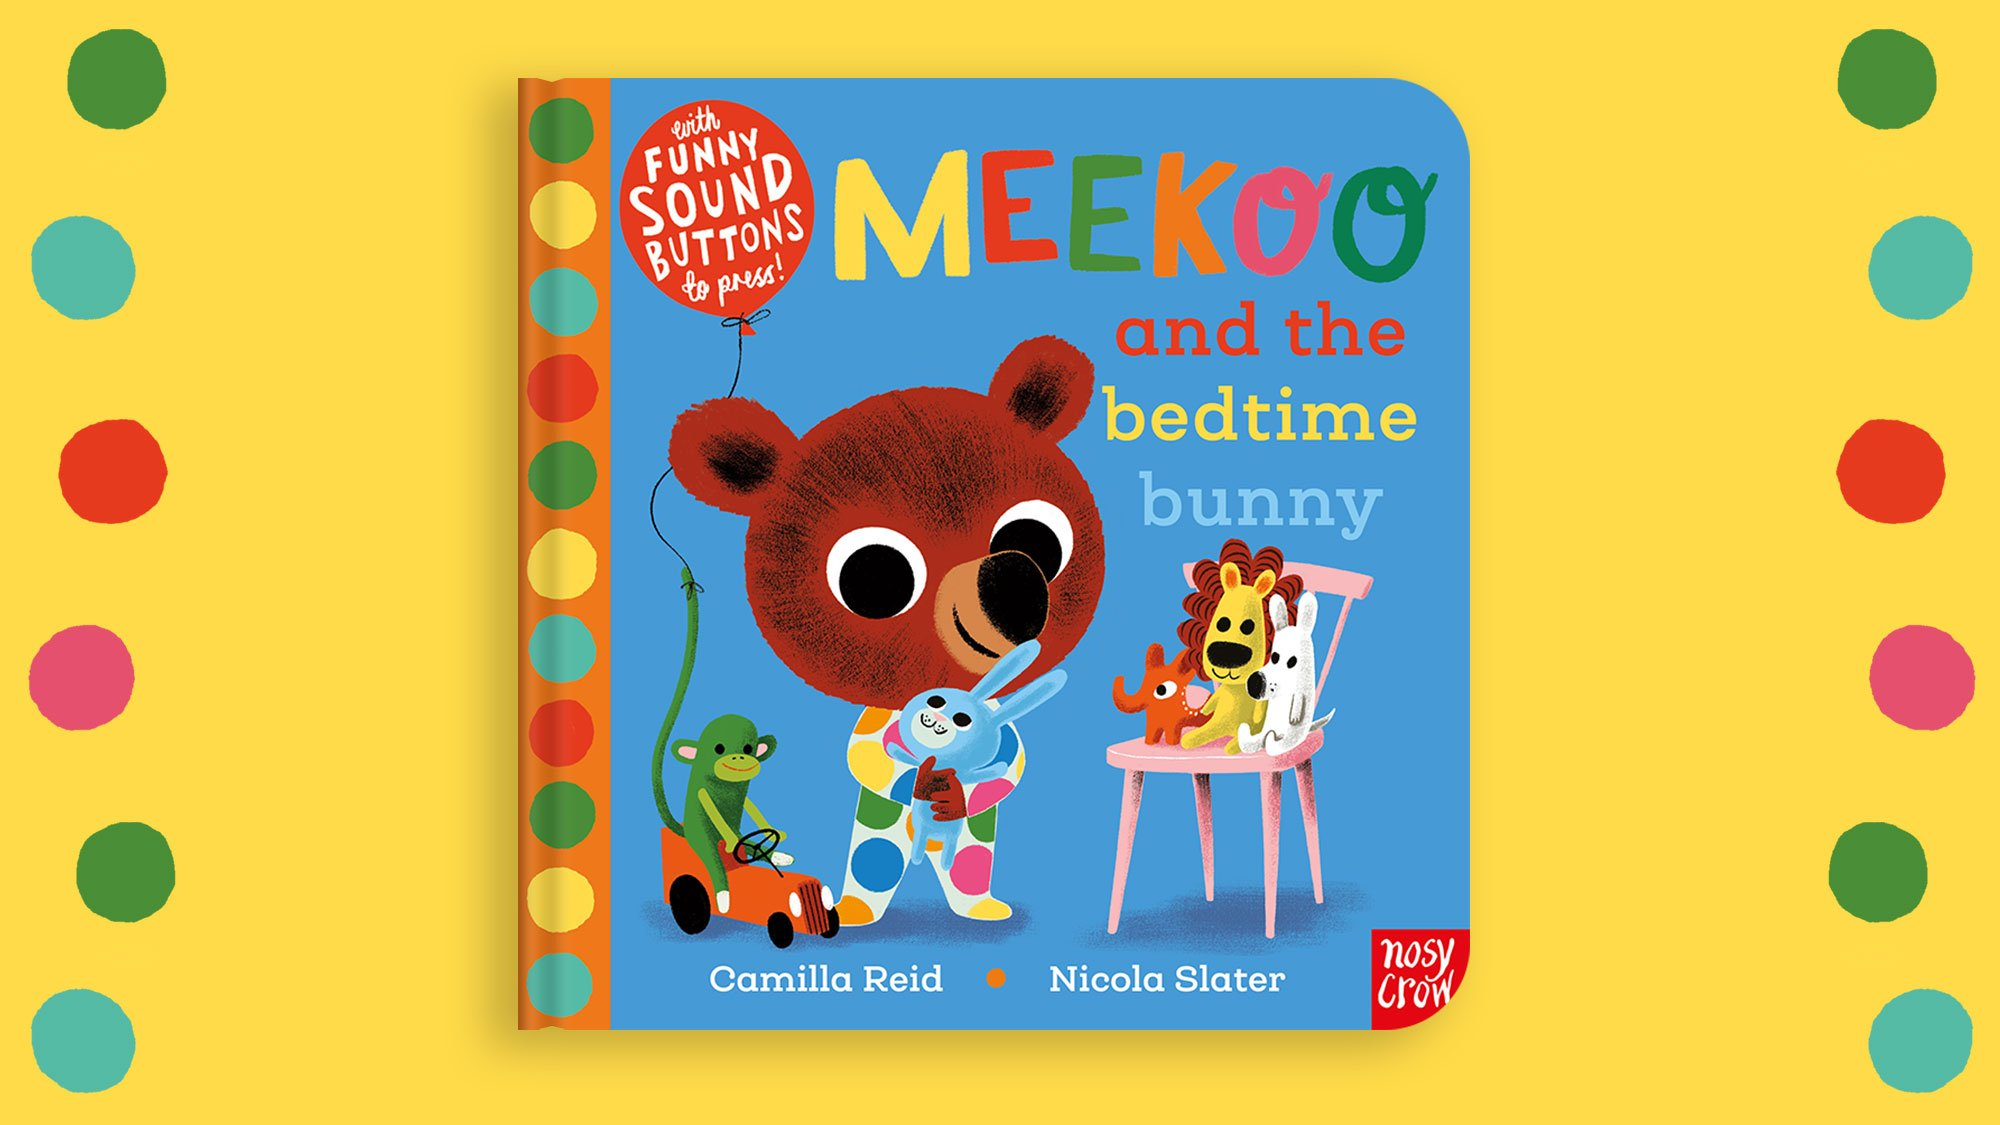 Take a look inside Meekoo and the Bedtime Bunny